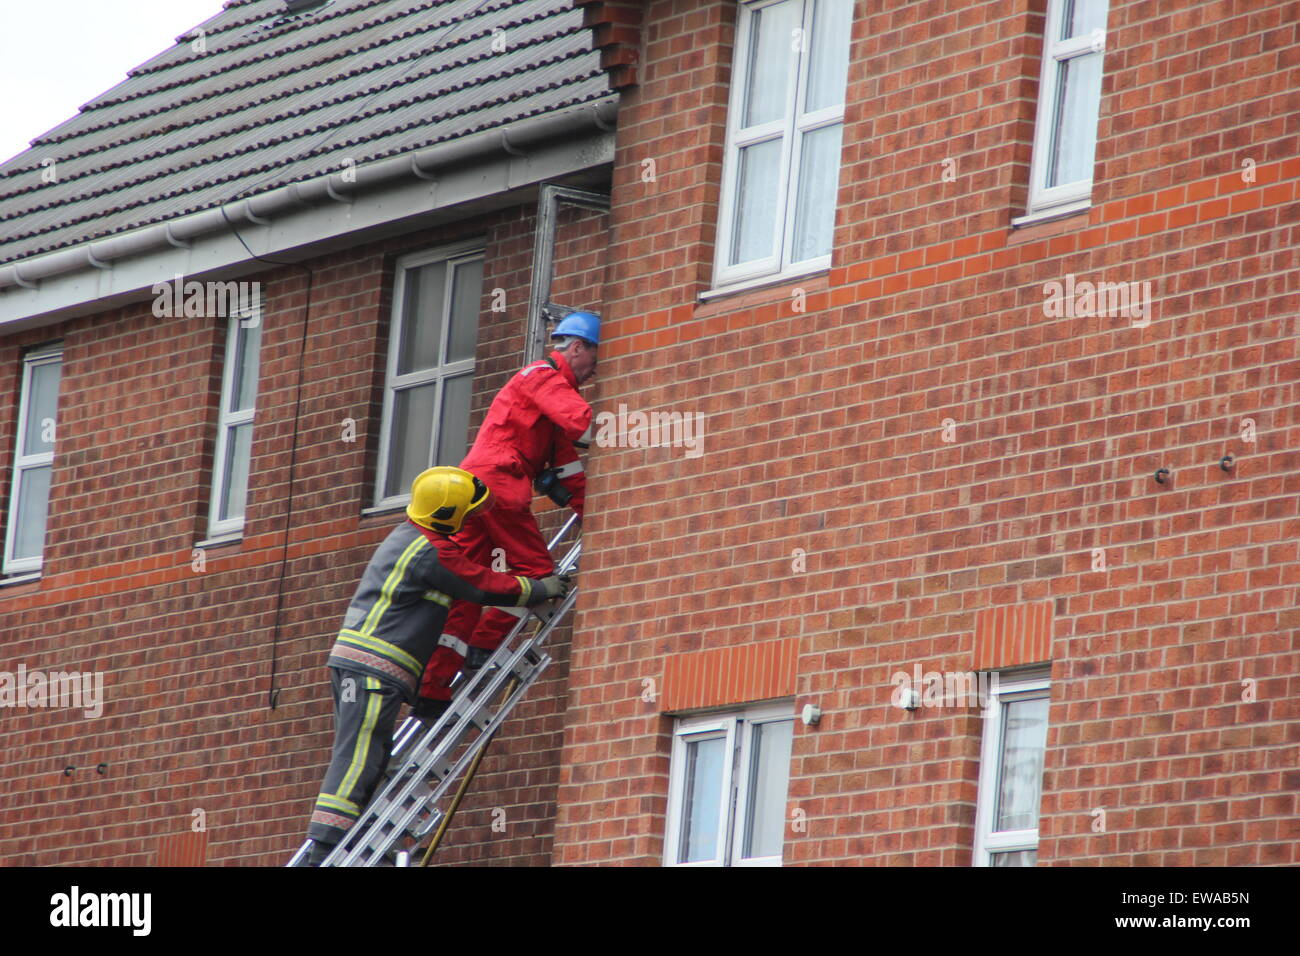 Langley Mill, Derbyshire UK. 21 June 2015. Three people have died in a house fire in Langley Mill. Police were called - Stock Image